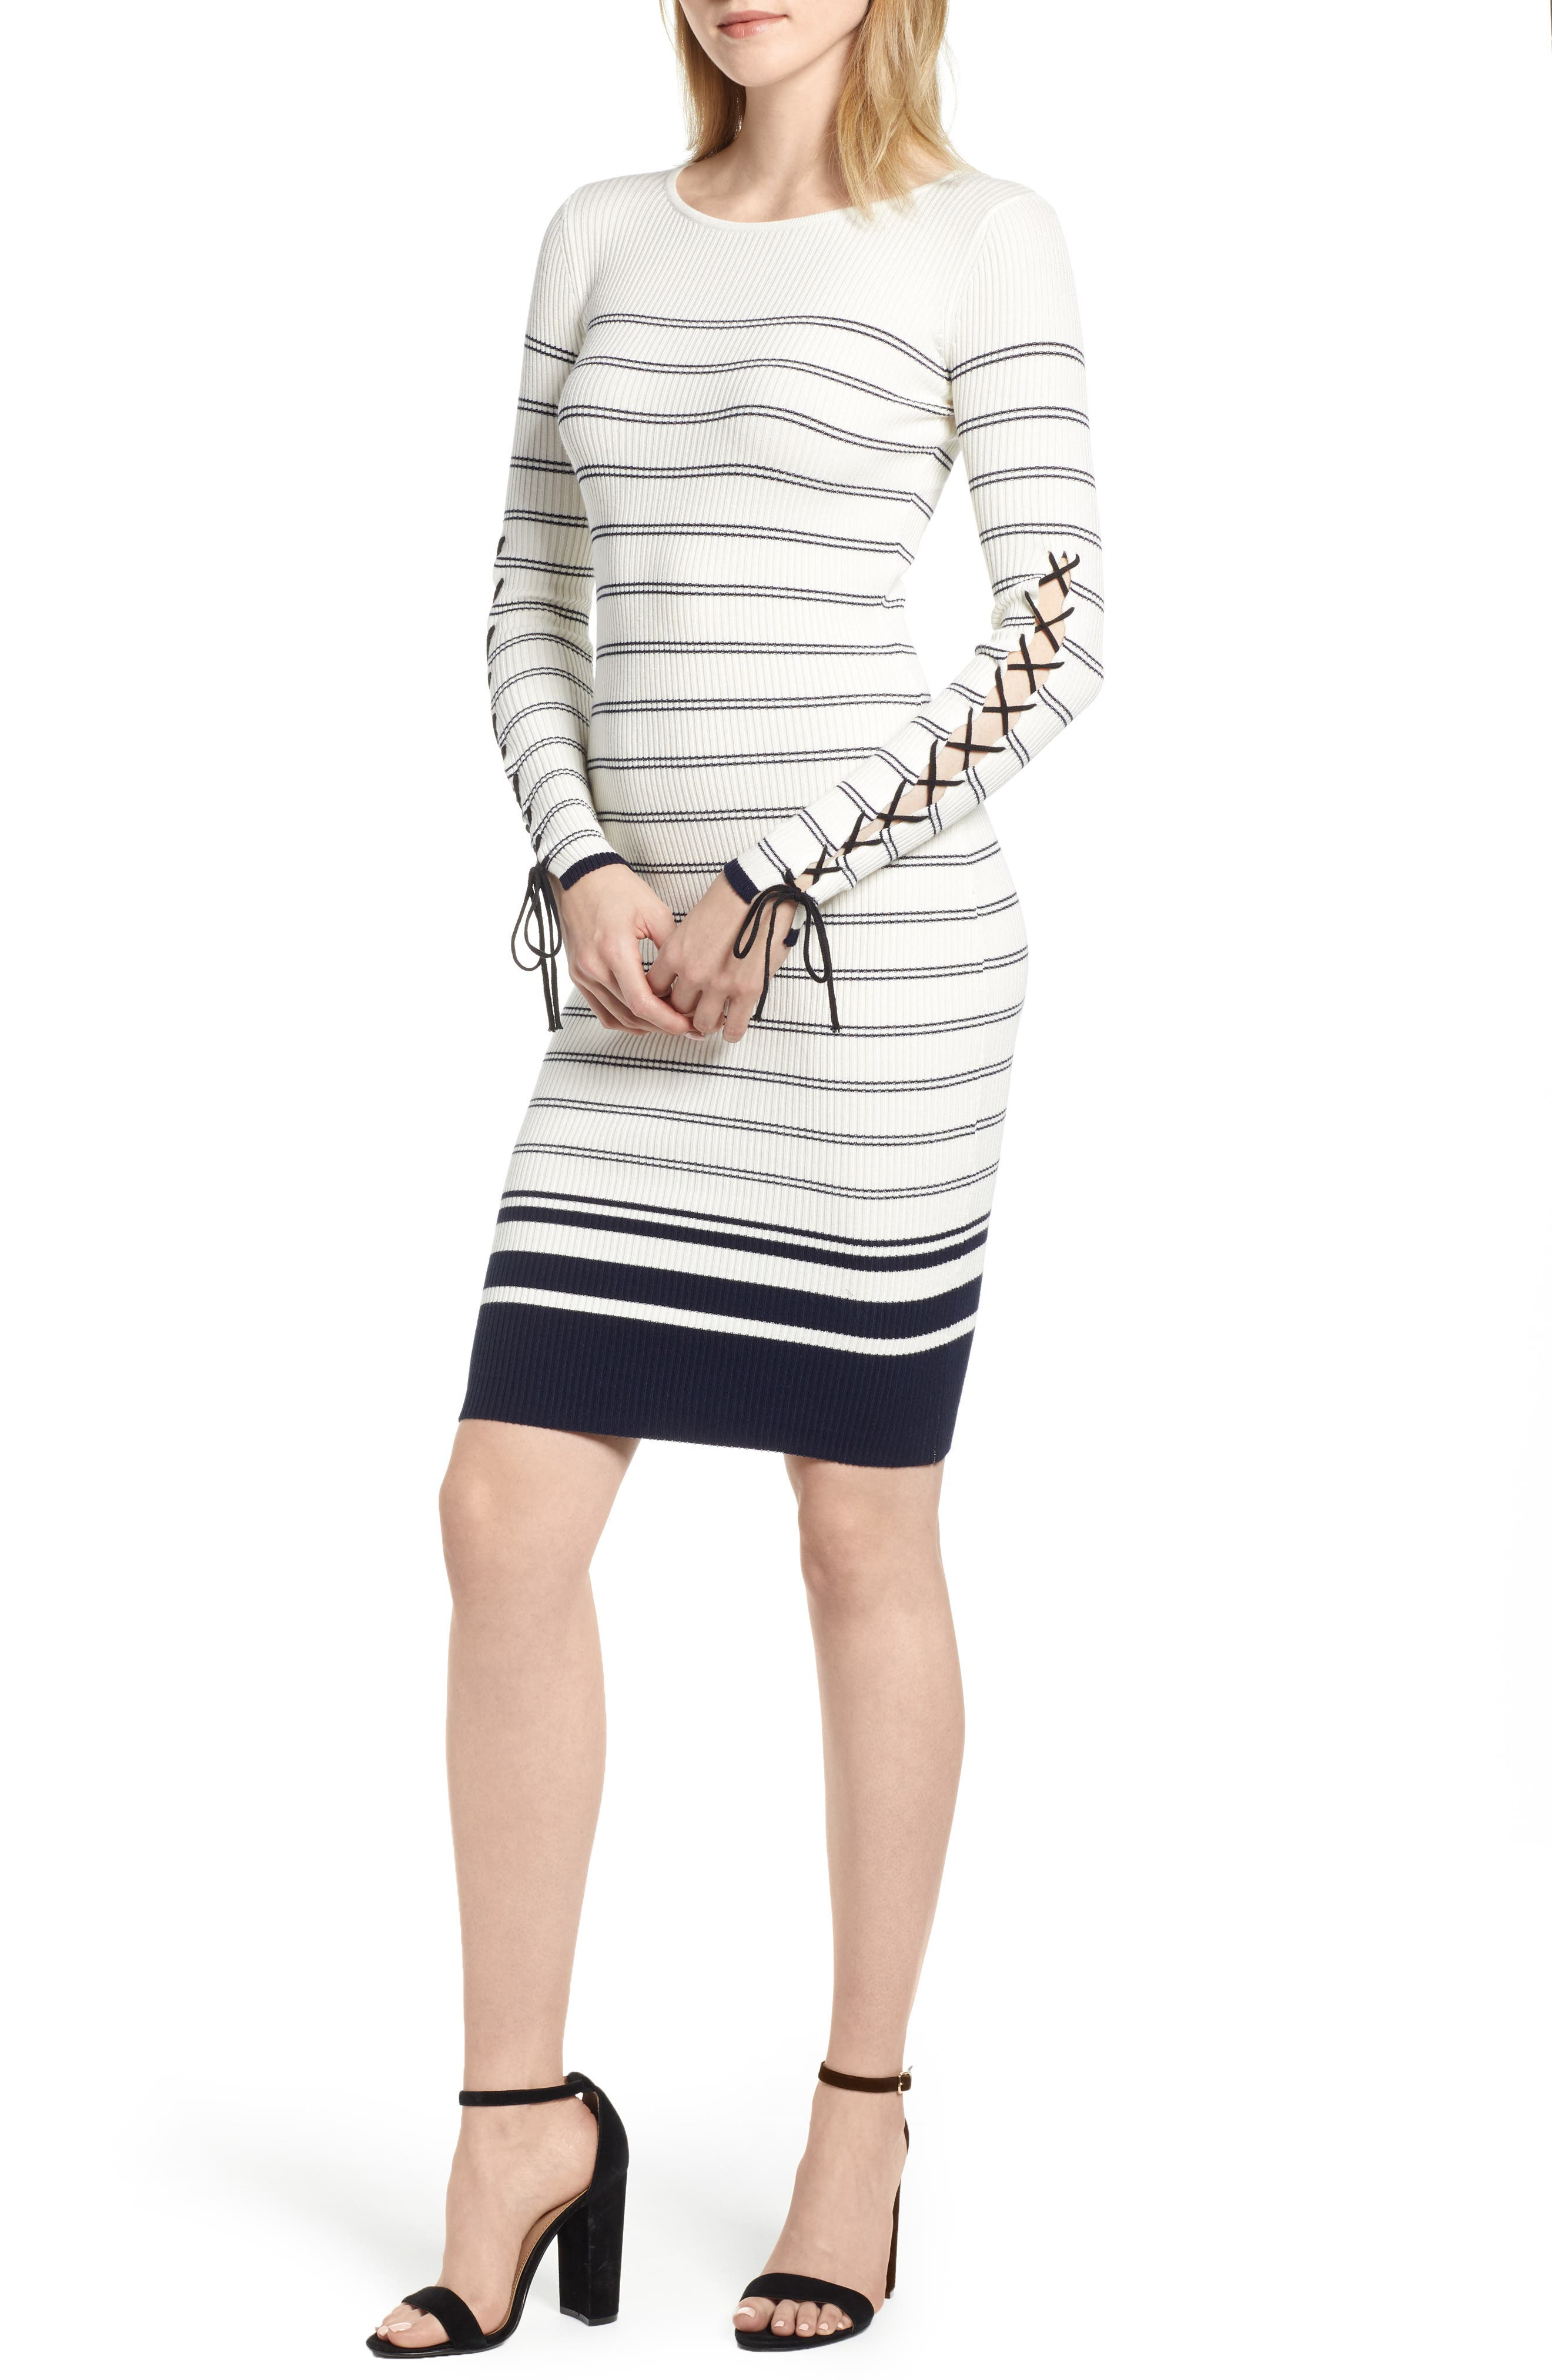 Bishop + Young Marissa Stripe Lace-Up Sleeve Sweater Dress, White